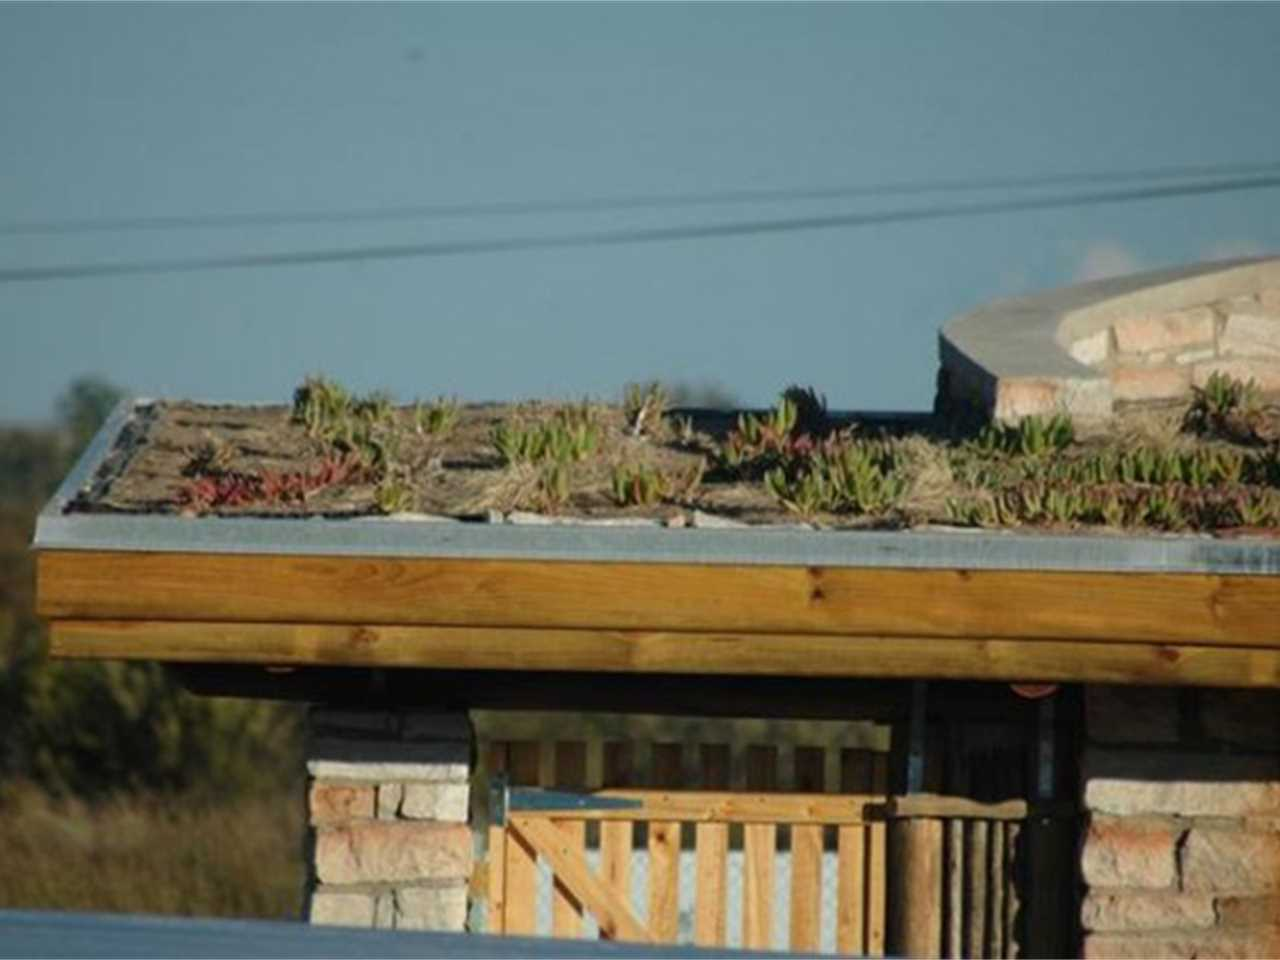 Project update January 2014 – Caravan site upgrade, Nieuwoudtville, South Africa